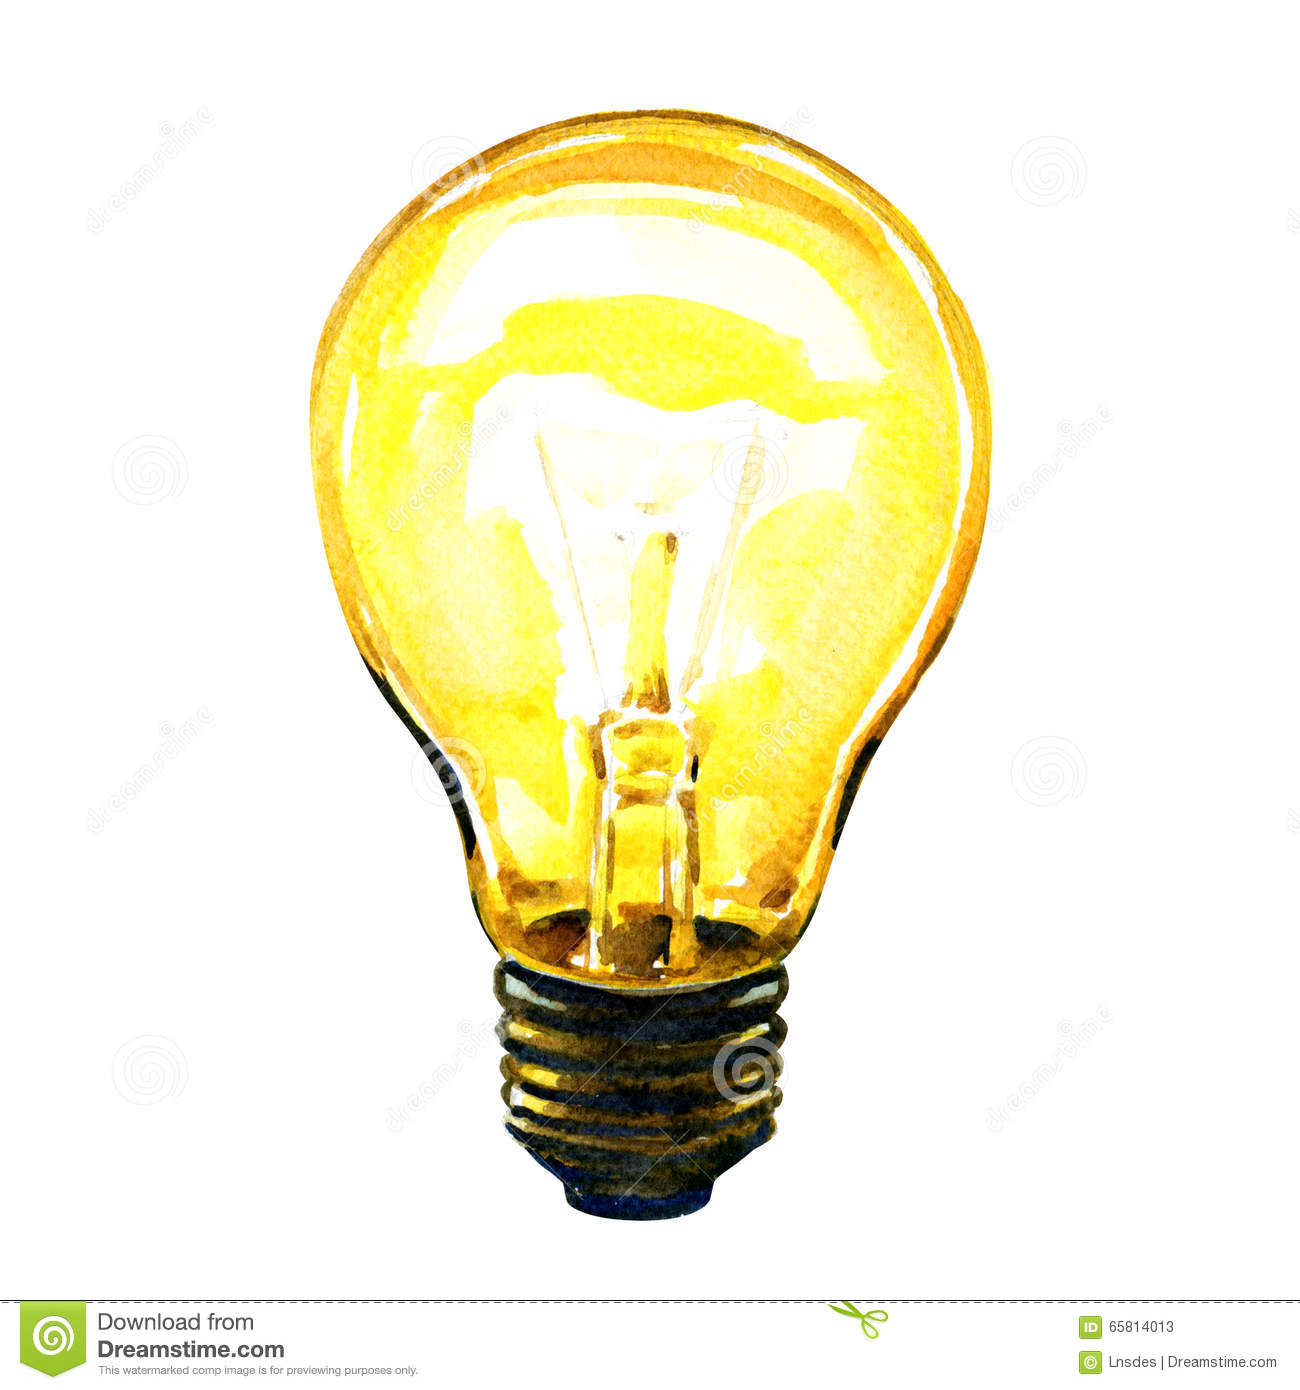 "Thomas Edison's serious incandescent light bulb research began in , filing his first patent later that year ""Improvement In Electric Lights"" in October"